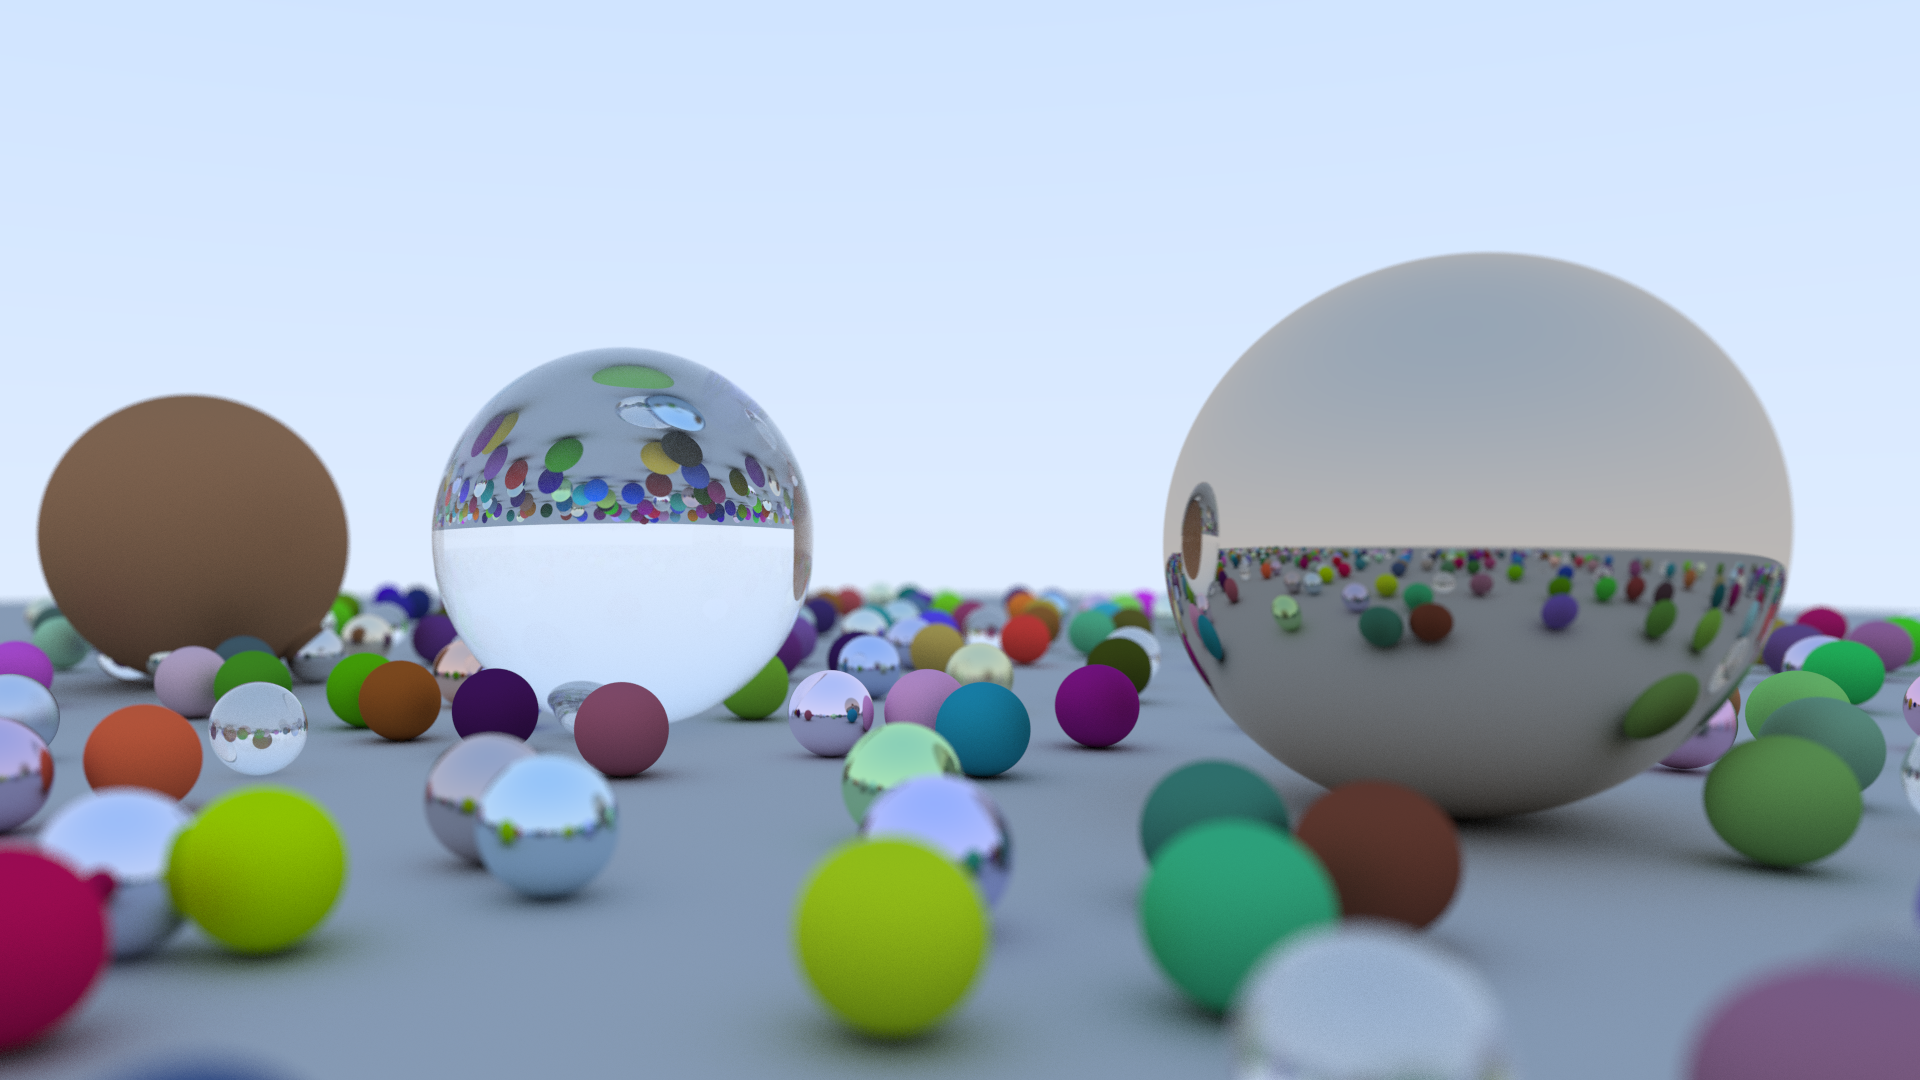 The final result. This scene contains three large spheres with different materials—lambertian, dielectric and metal. They are surrounded by a lot of little spheres with various colors and materials.